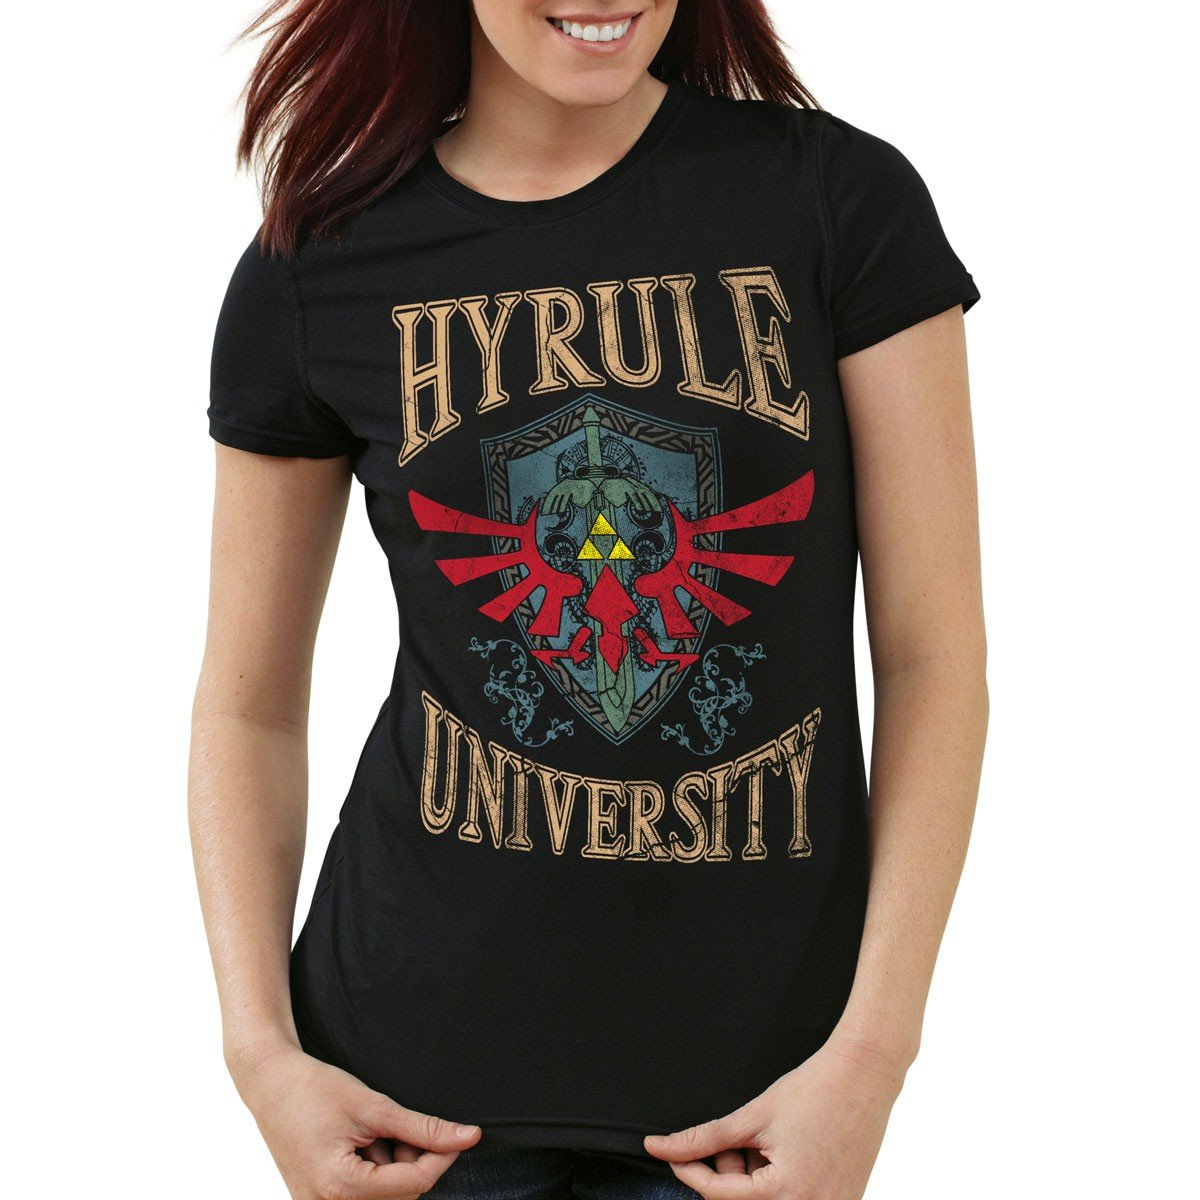 style3 University of Hyrule Camiseta para mujer T-Shirt: Amazon.es: Ropa y accesorios